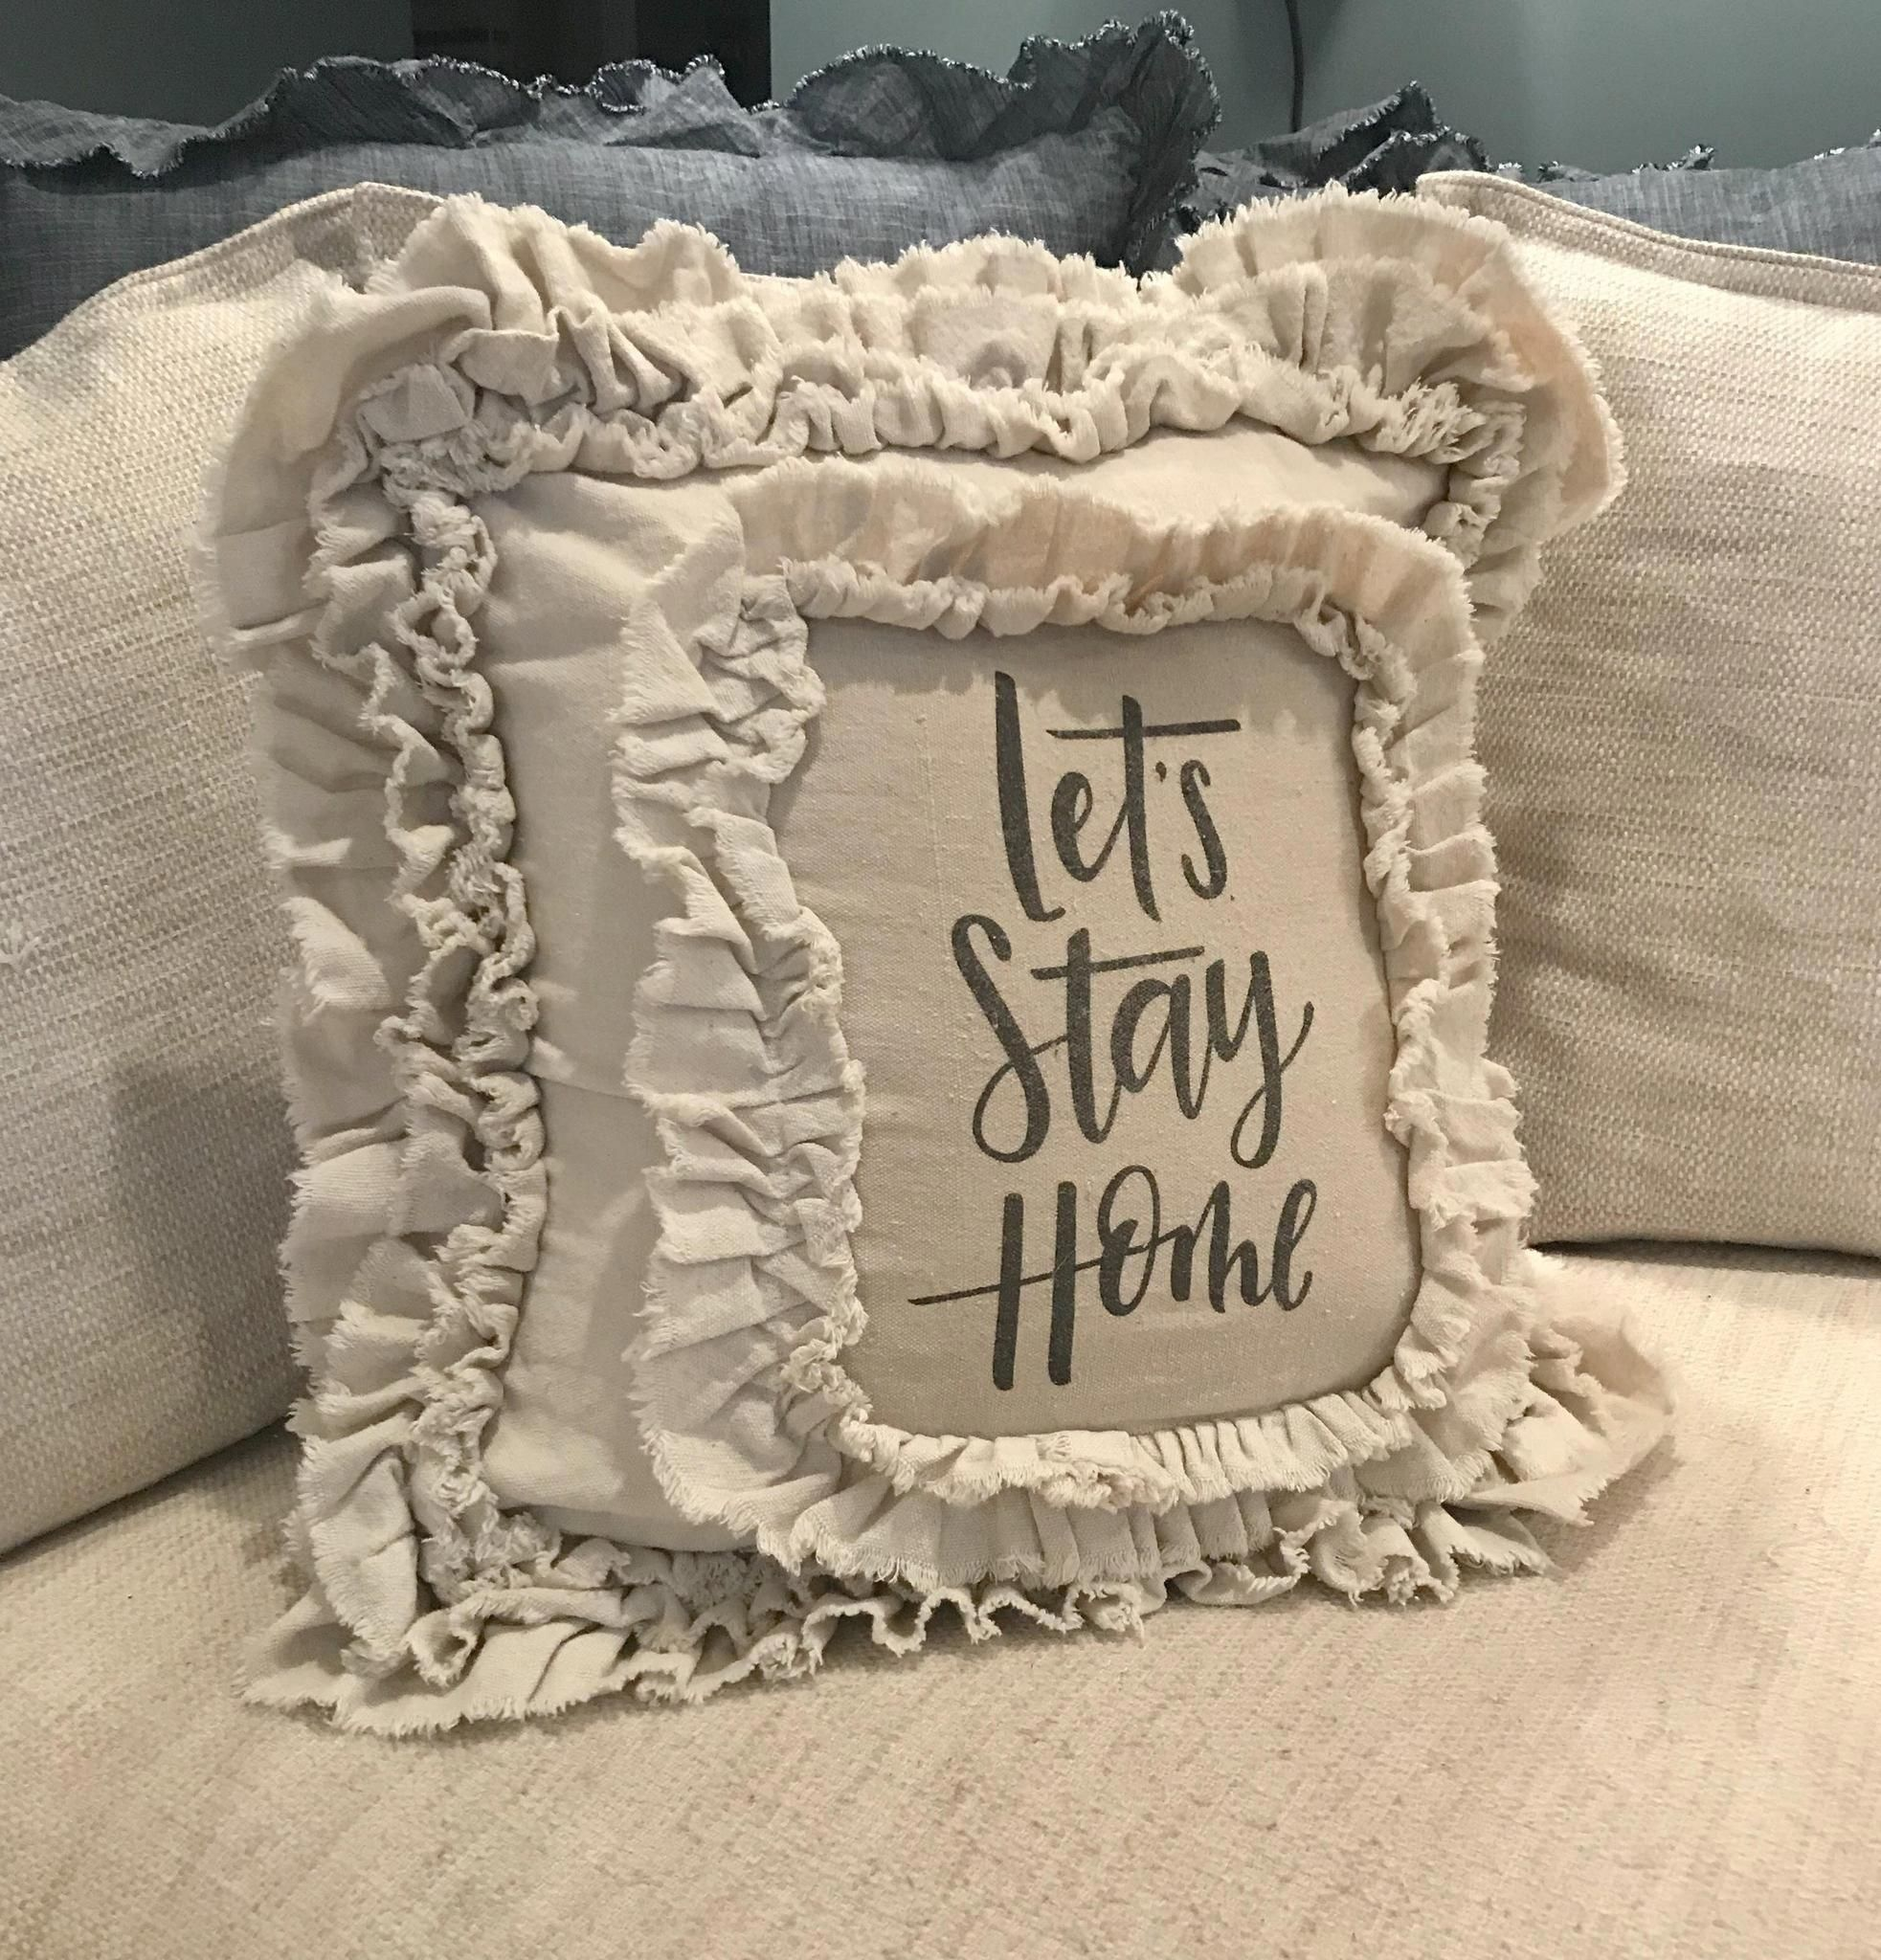 ec0e6ce23a18 Handmade Vintage Inspired Let s Stay Home Pillow Cover – Farmhouse Fresh  Home  Shabbychichomes